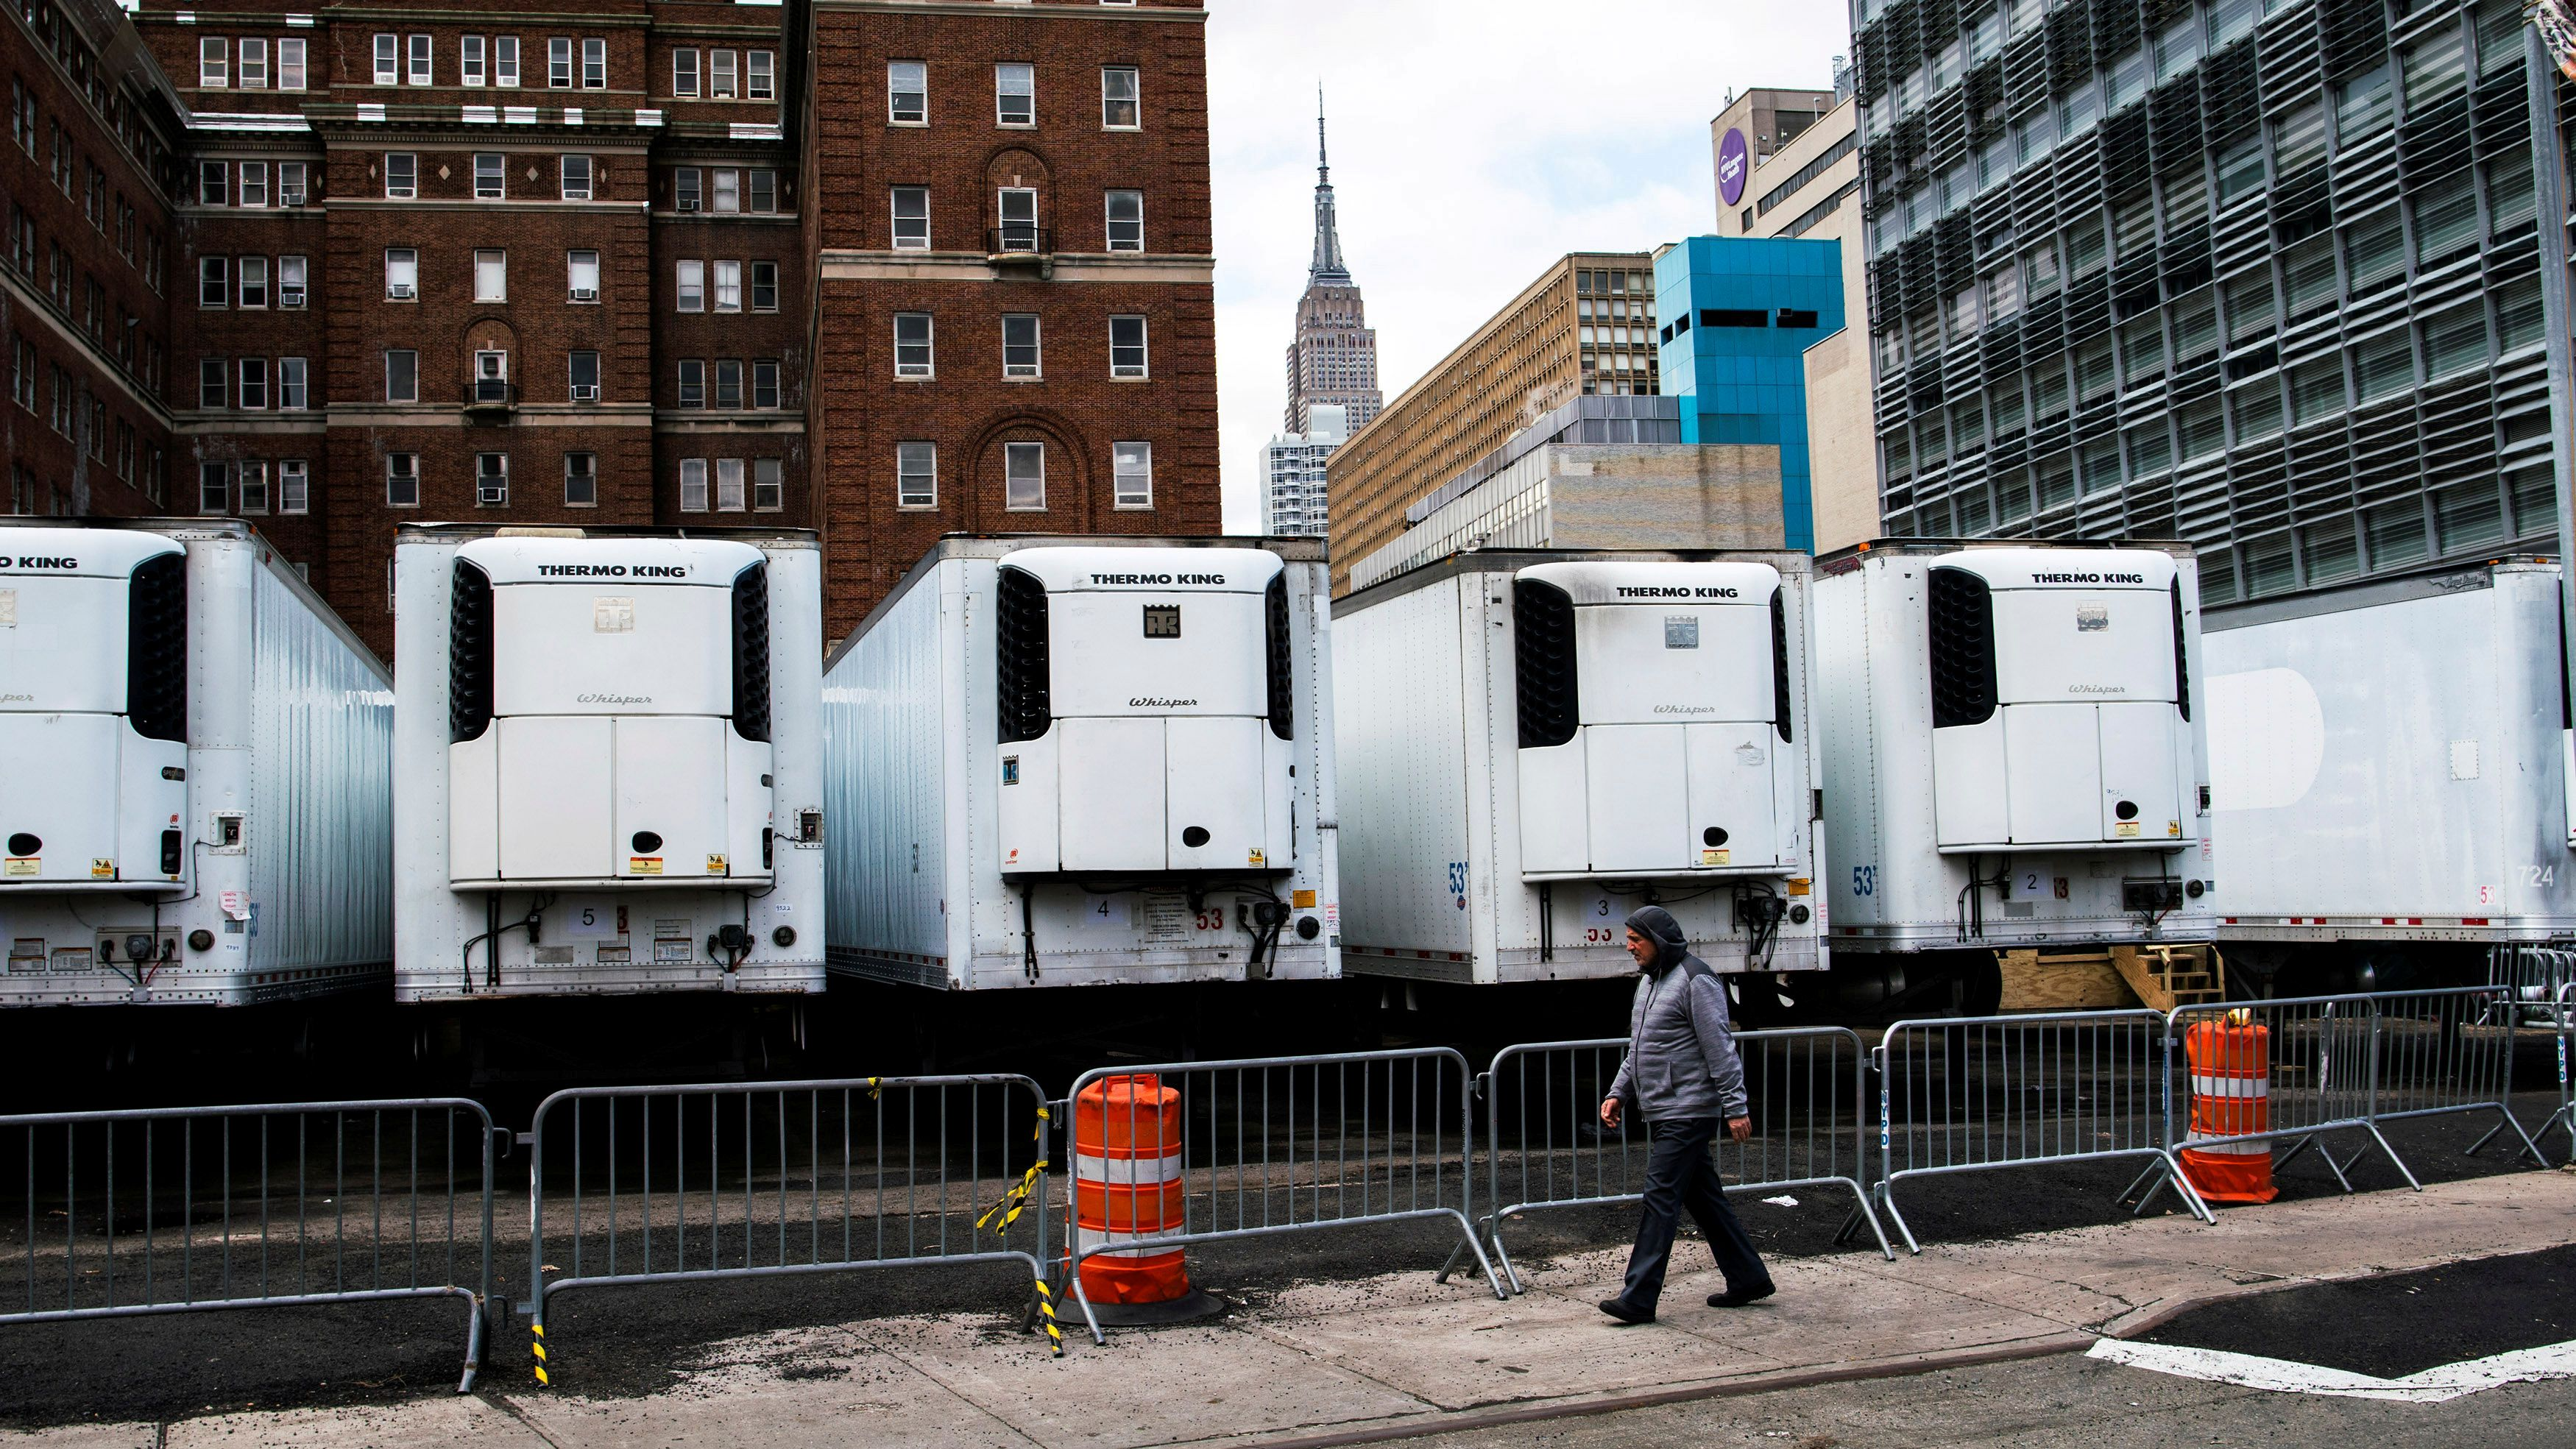 A man walks near a row of refrigeration units used as makeshift morgues located behind Bellevue Hospital as the Empire State Building is seen during the outbreak of the coronavirus disease (COVID-19) in New York City, U.S., March 31, 2020  REUTERS/Eduardo Munoz/File Photo